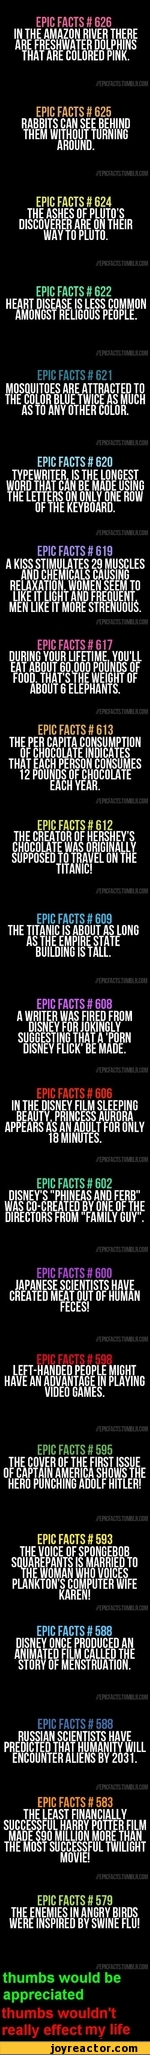 EPIC FACTS COMP